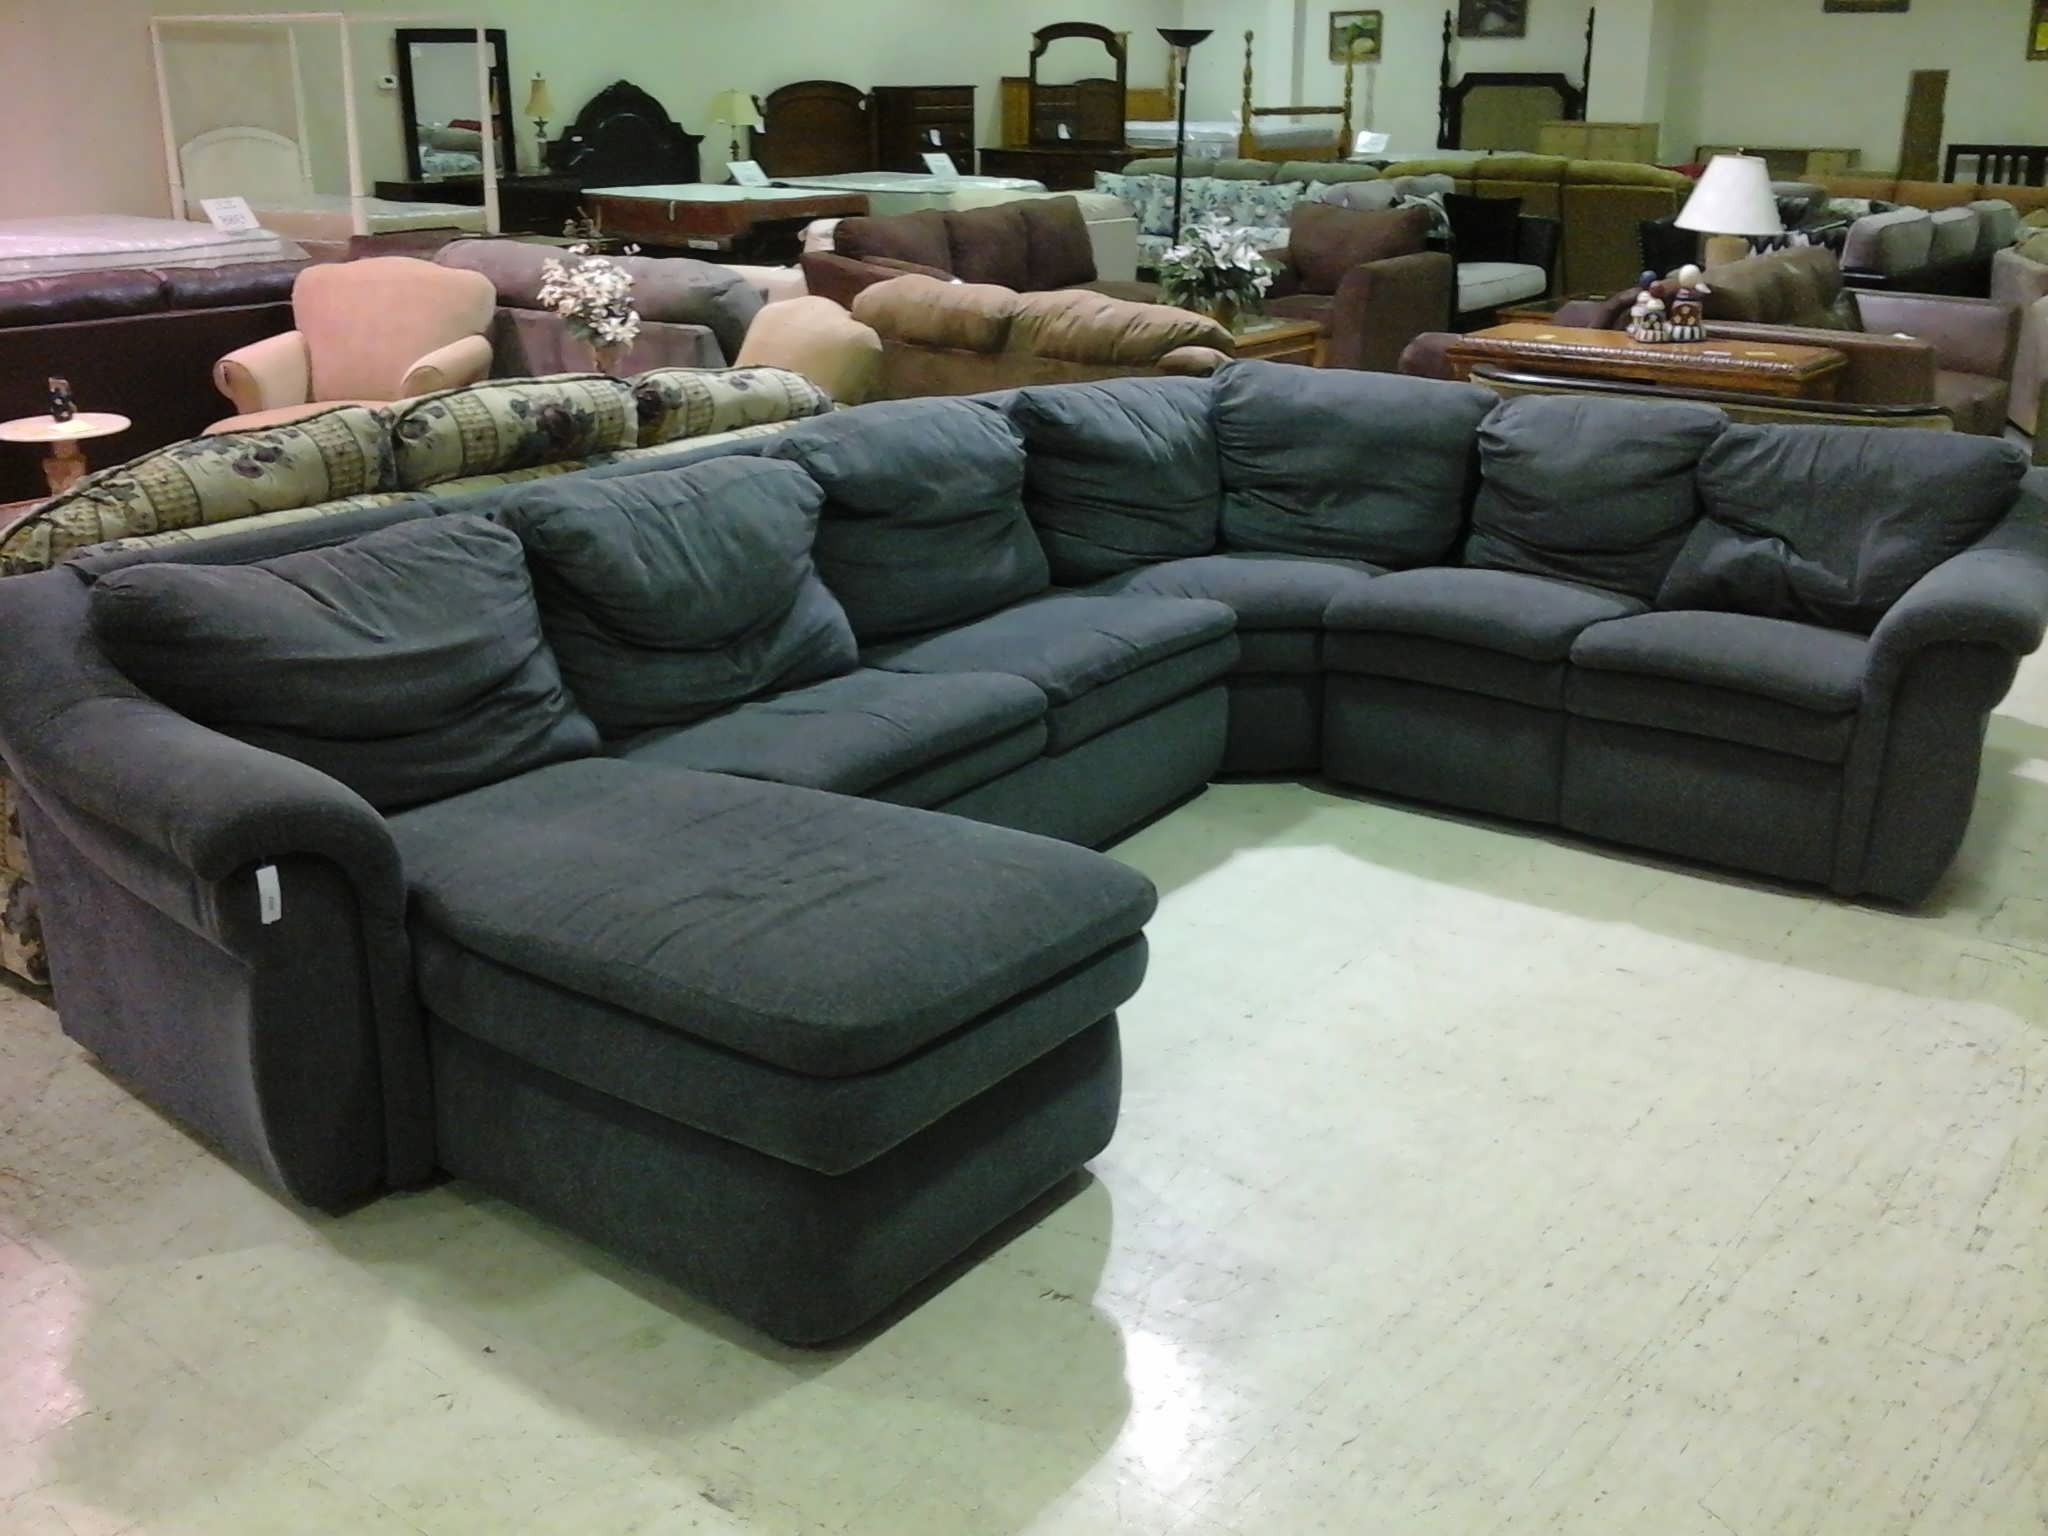 Sofa : Couch Sectionals Chaise Sofa Reclining Sectional With In 2017 Sectionals With Chaise And Recliner (View 10 of 15)